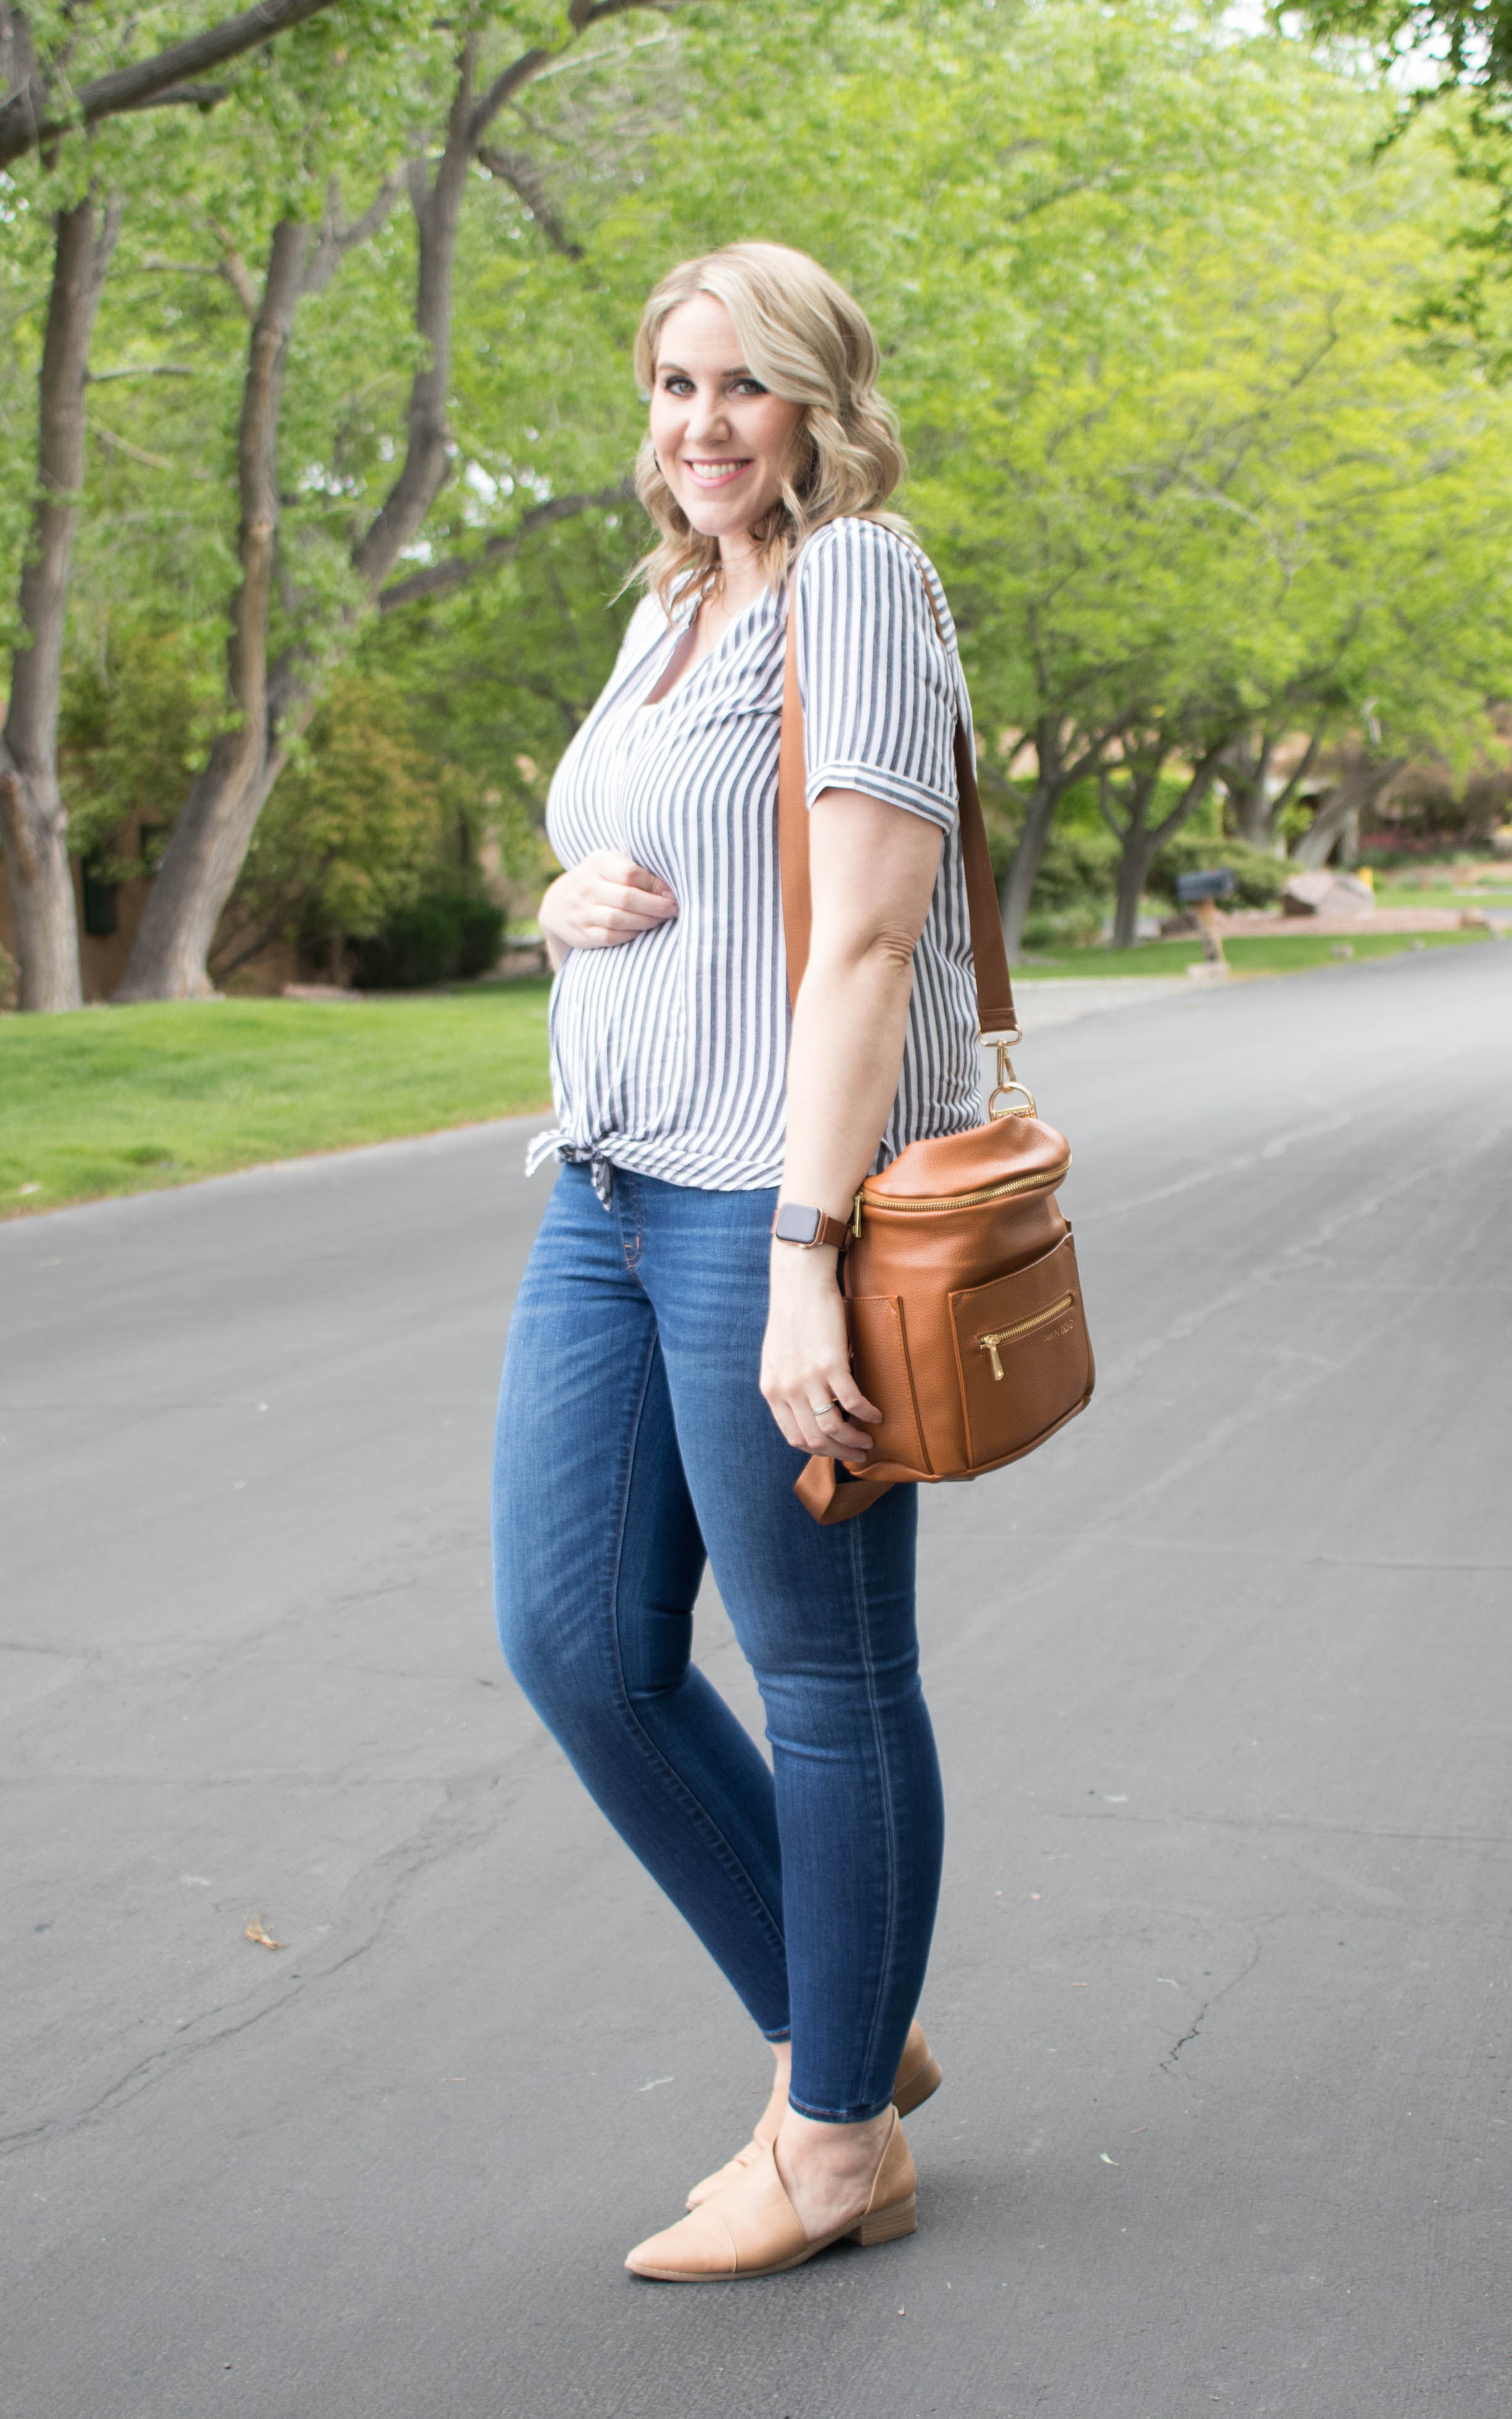 my new favorite maternity jeans madewell maternity #madewell #maternityclothes #maternityfashion